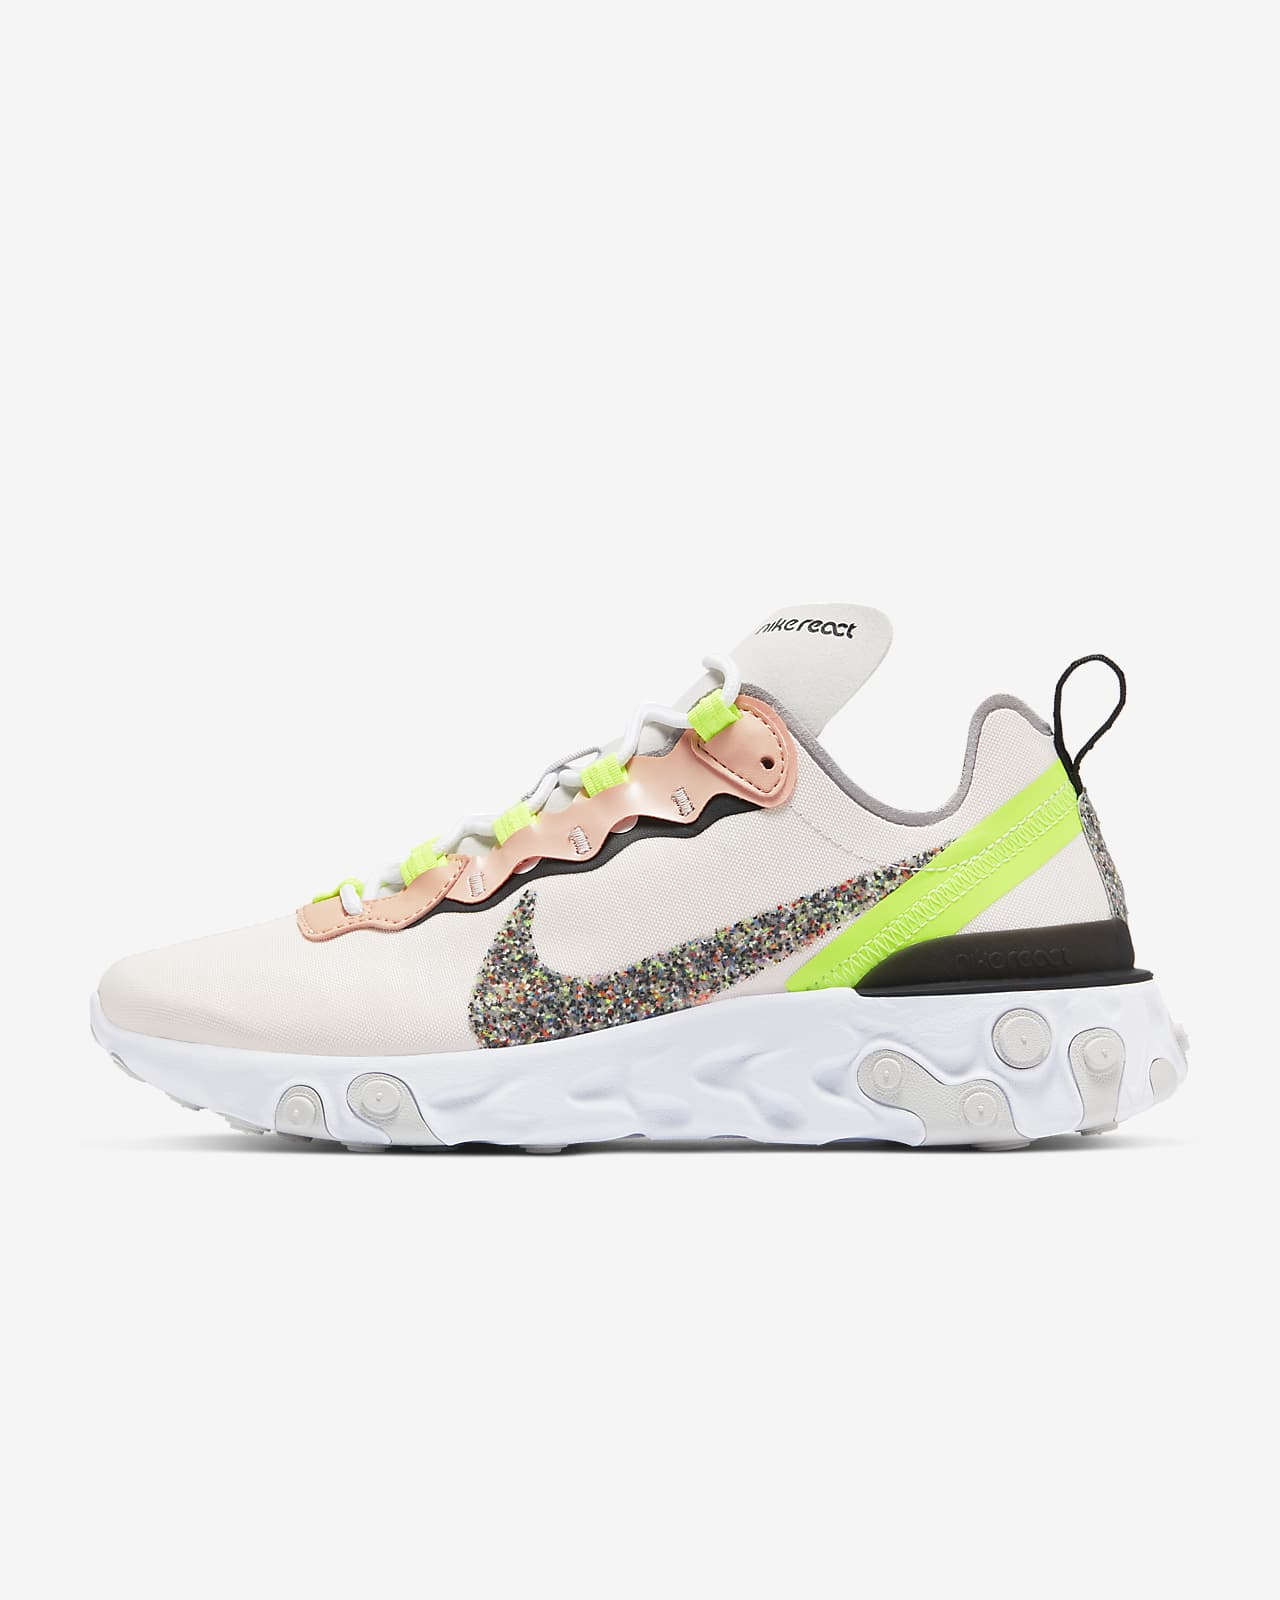 Nike React Element 55 Premium Women's Shoe